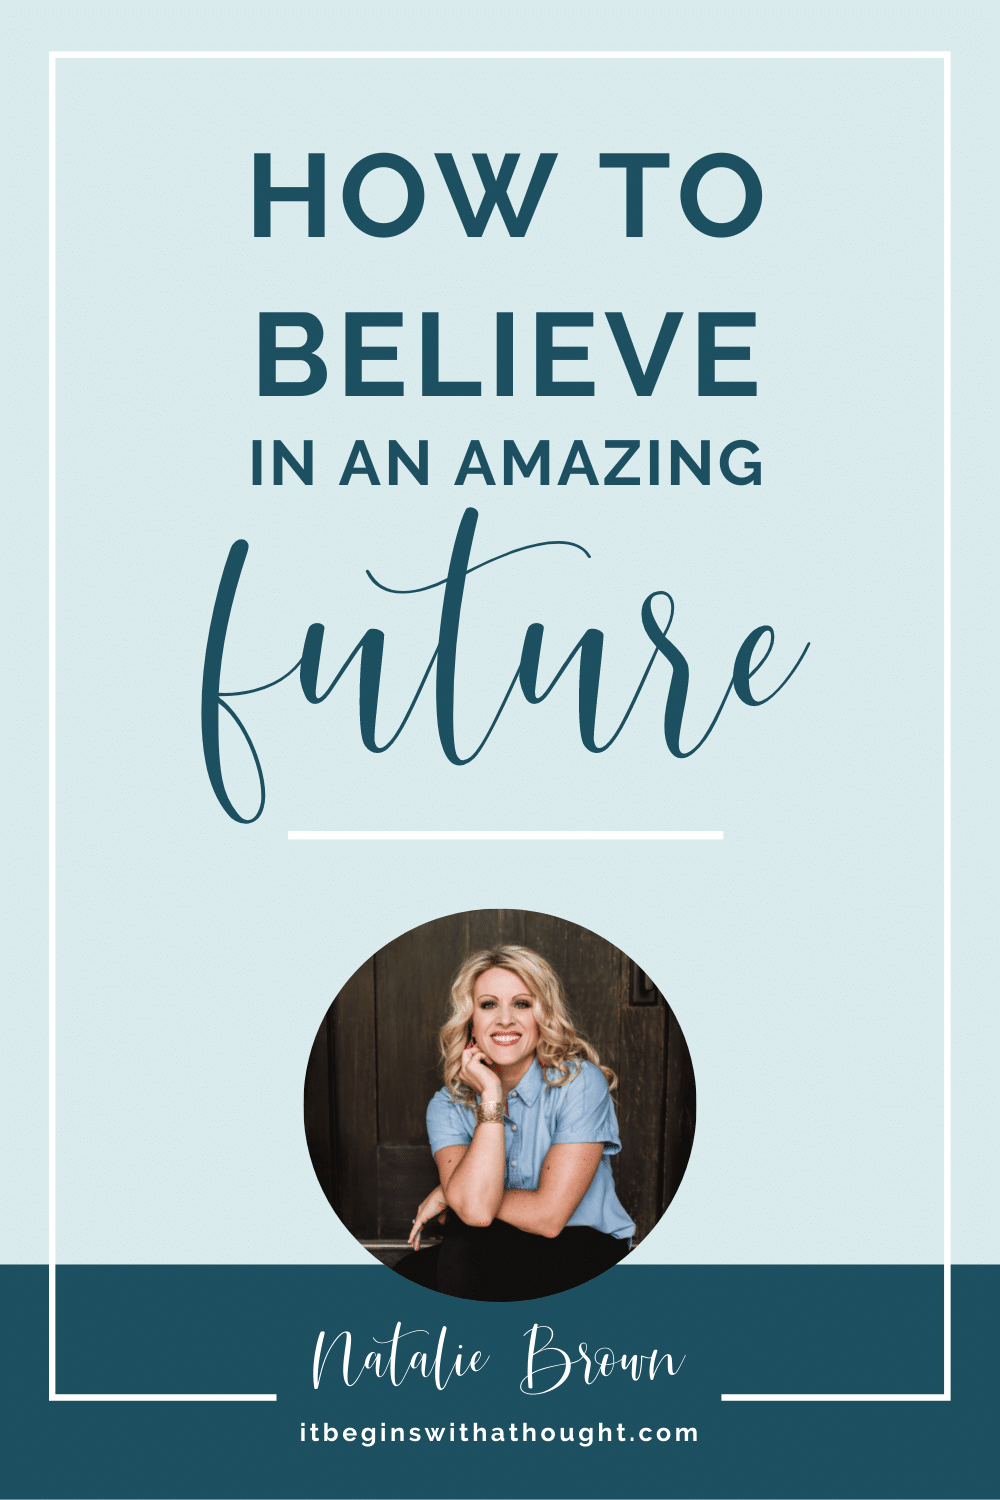 How to believe in an amazing future